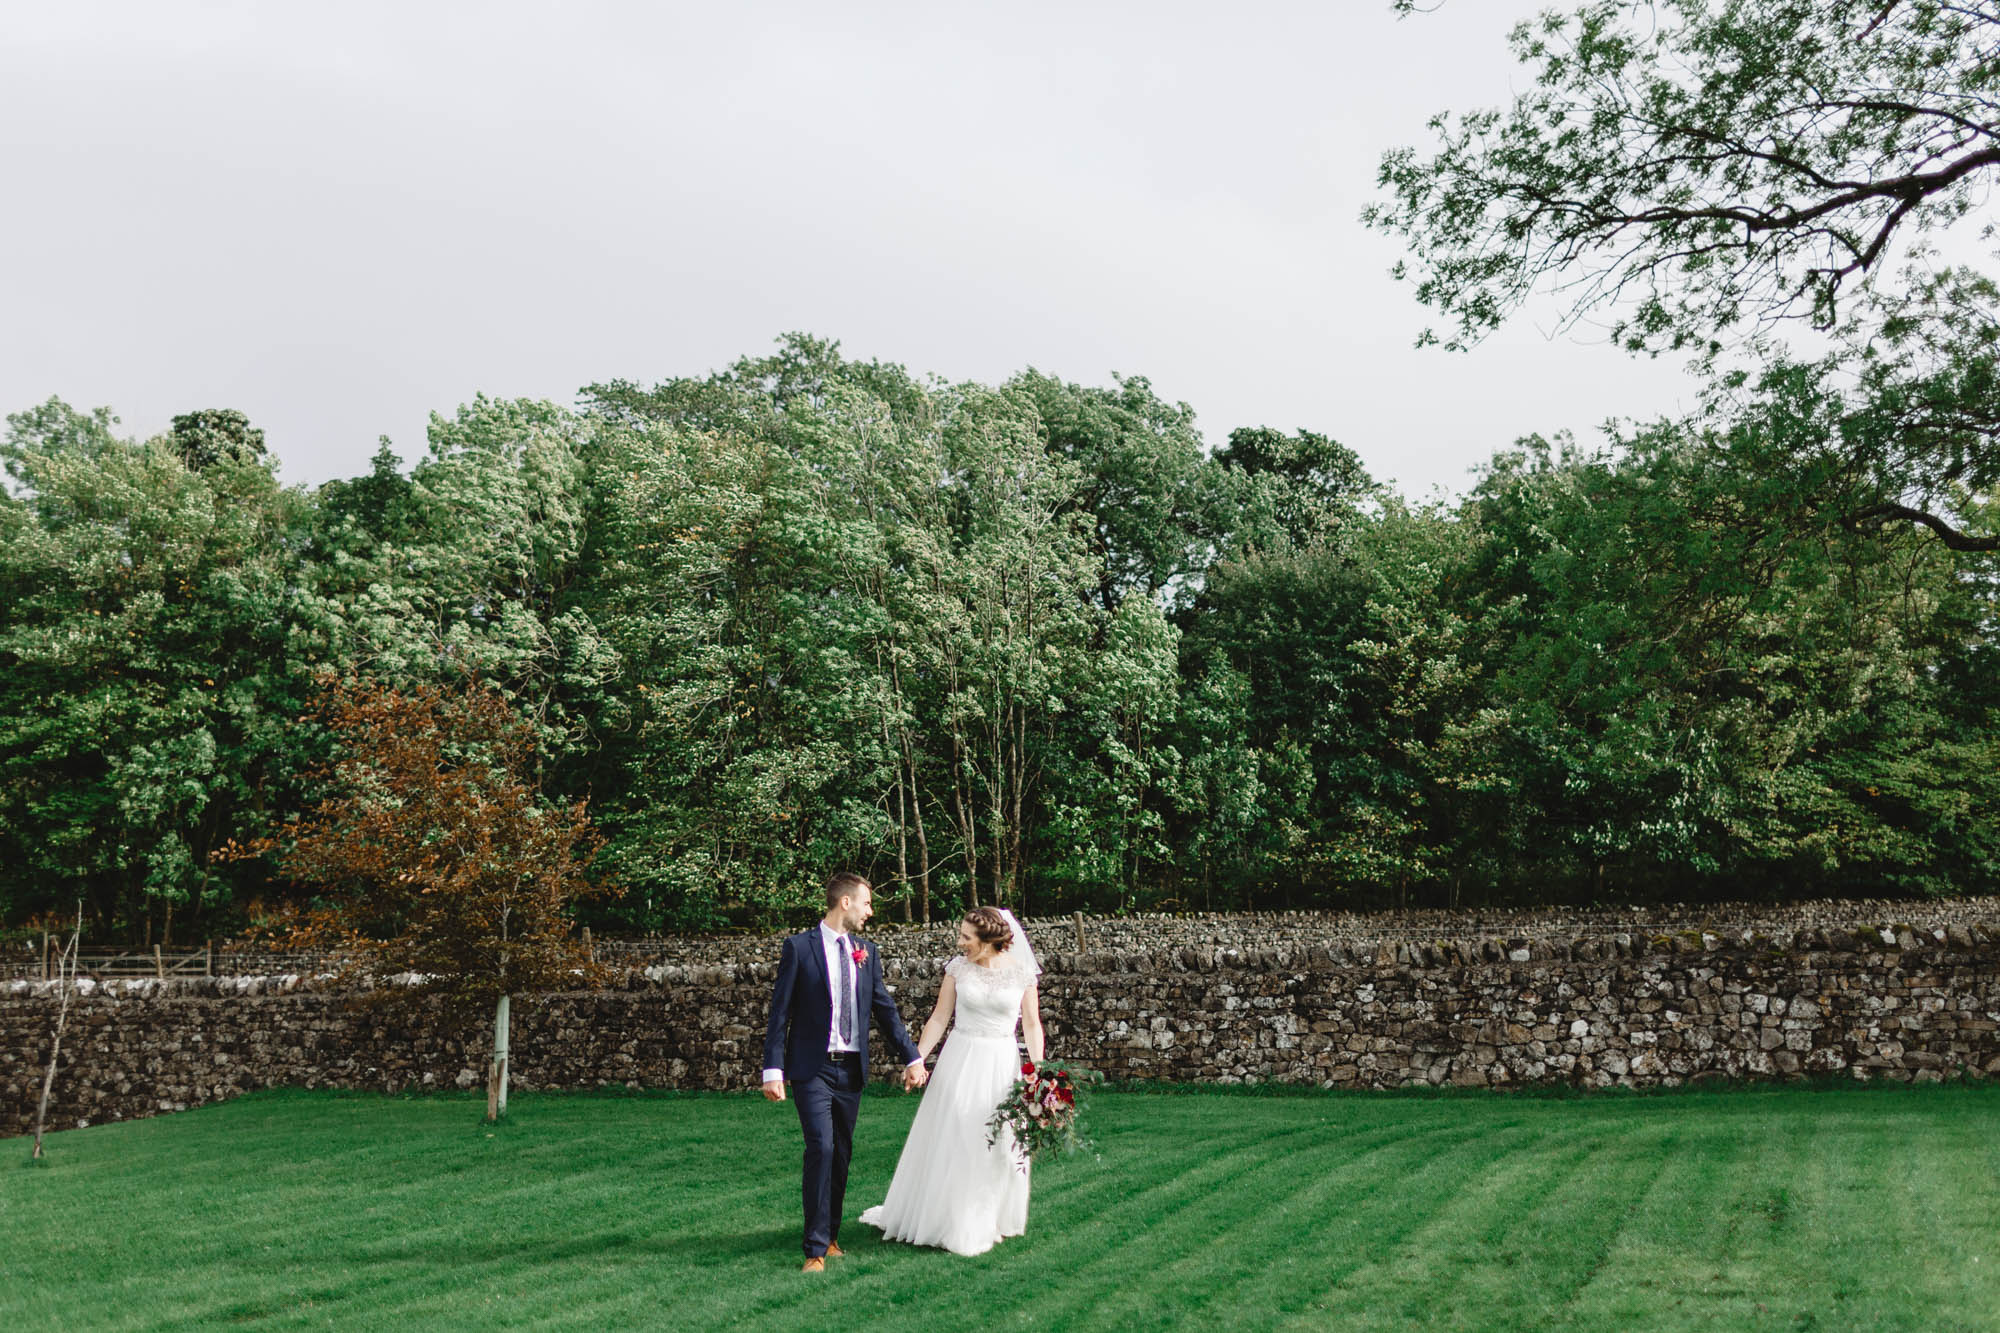 Photography from a North Yorkshire Wedding, Leeds, romantic, outdoor ceremony, DIY wedding, candid, relaxed fun photographer Huddersfield, couples shot